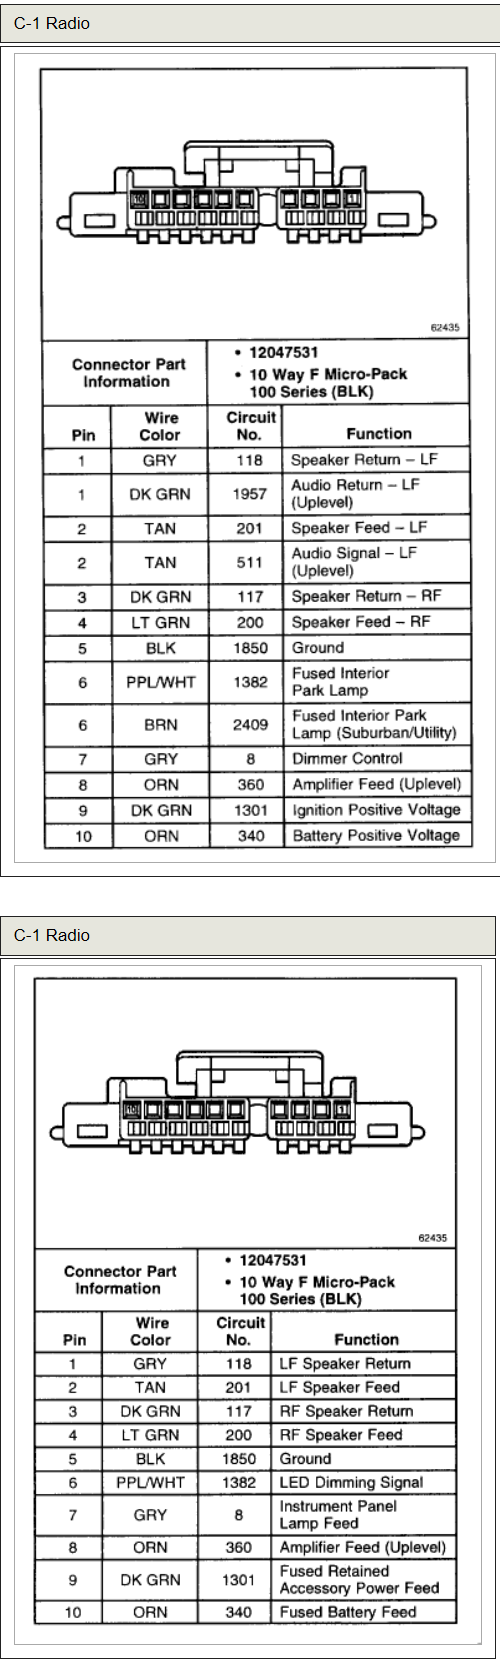 2000 chevy venture radio wiring diagram free download - wiring diagram  overview symbol-halt - symbol-halt.aigaravenna.it  aigaravenna.it